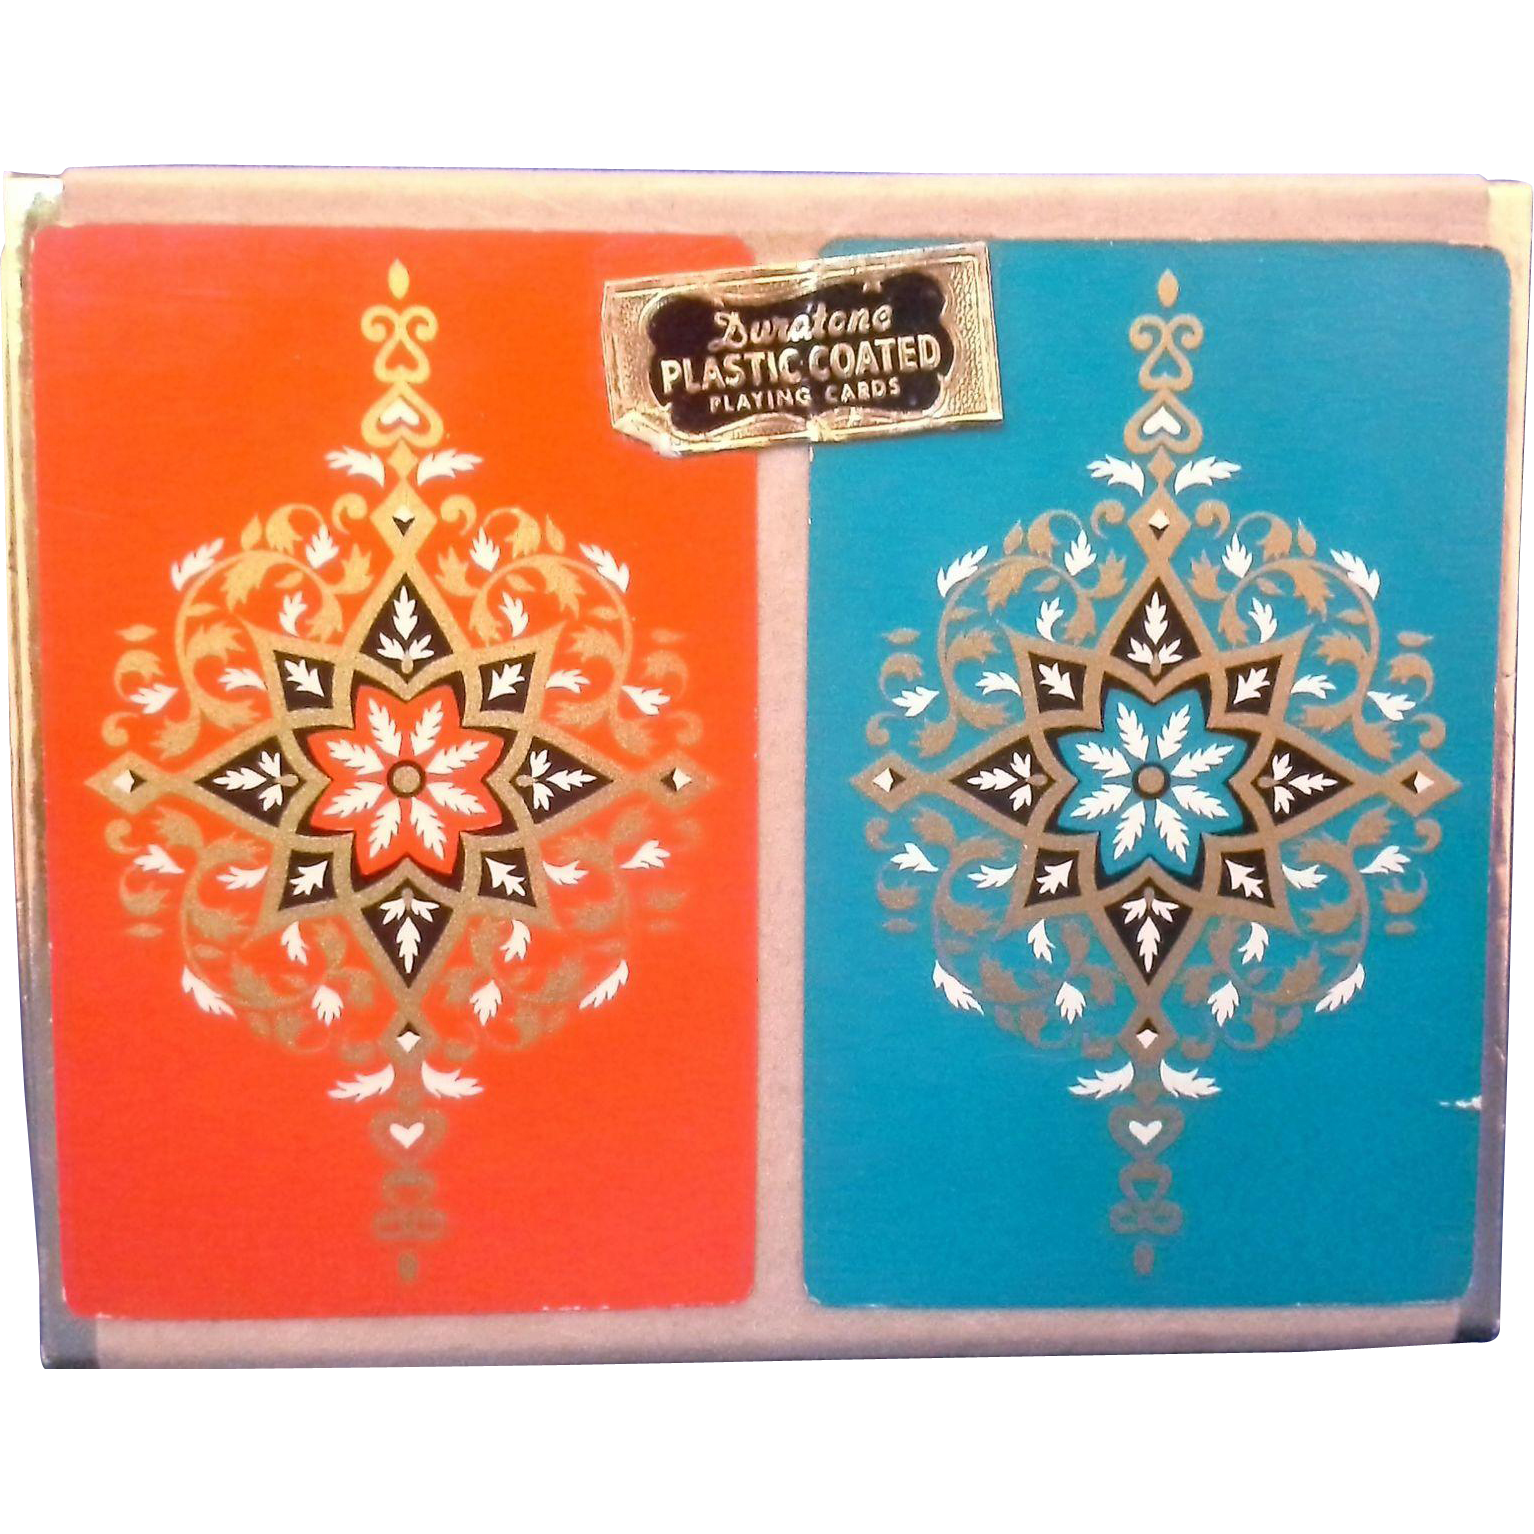 Duratone Plastic Coated Playing Cards Double Deck Red Teal Gold